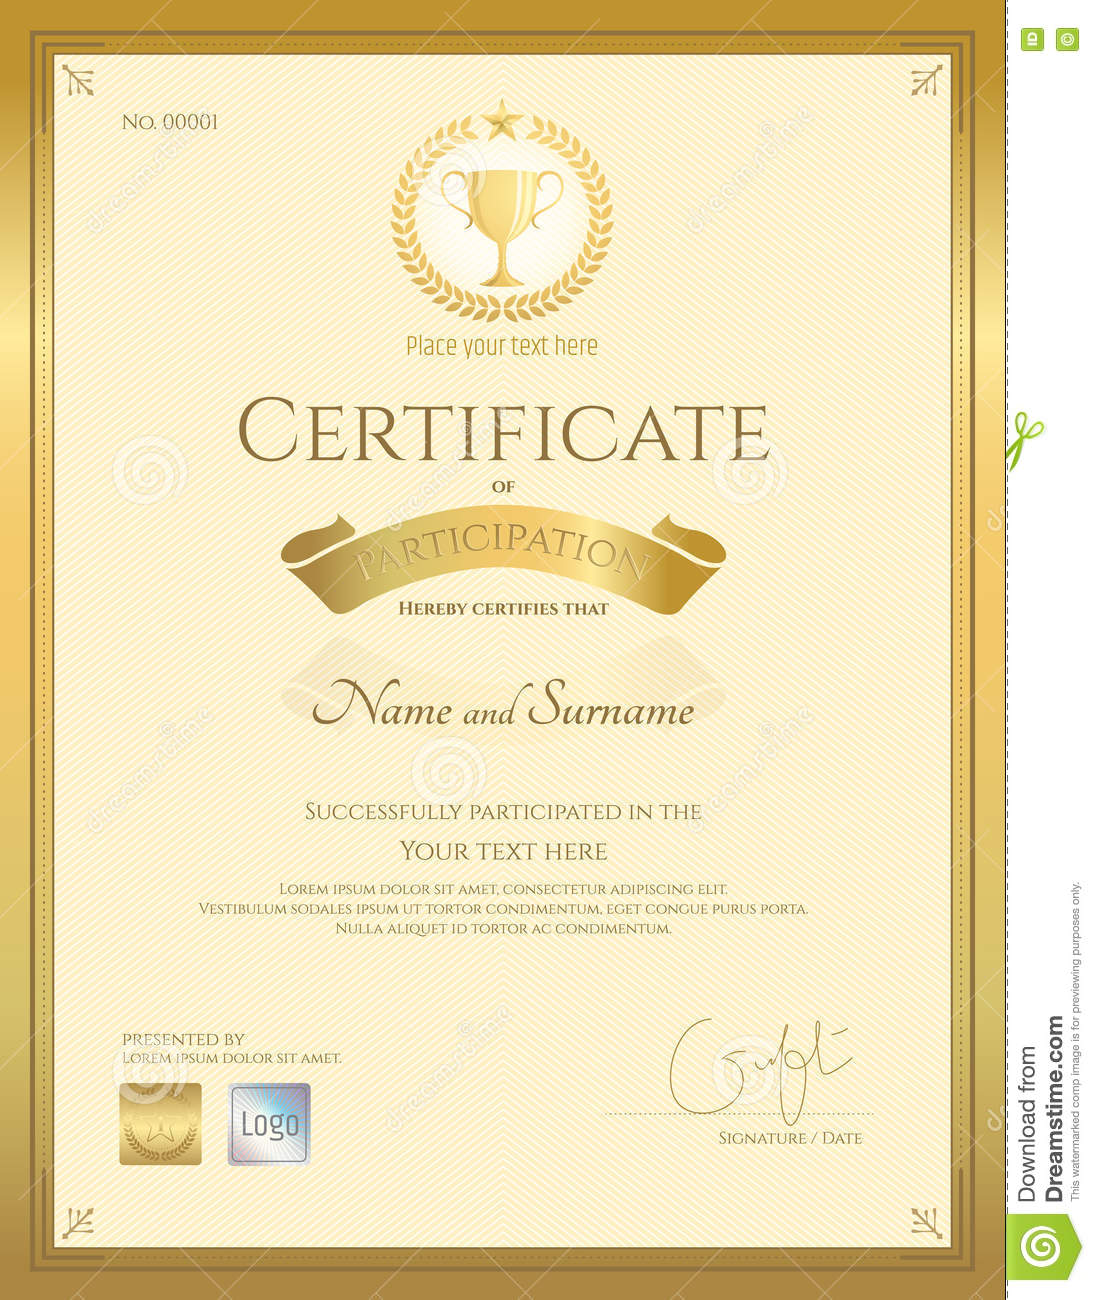 Certificate Of Participation Template In Gold Color  Certificate Of Participation Free Template